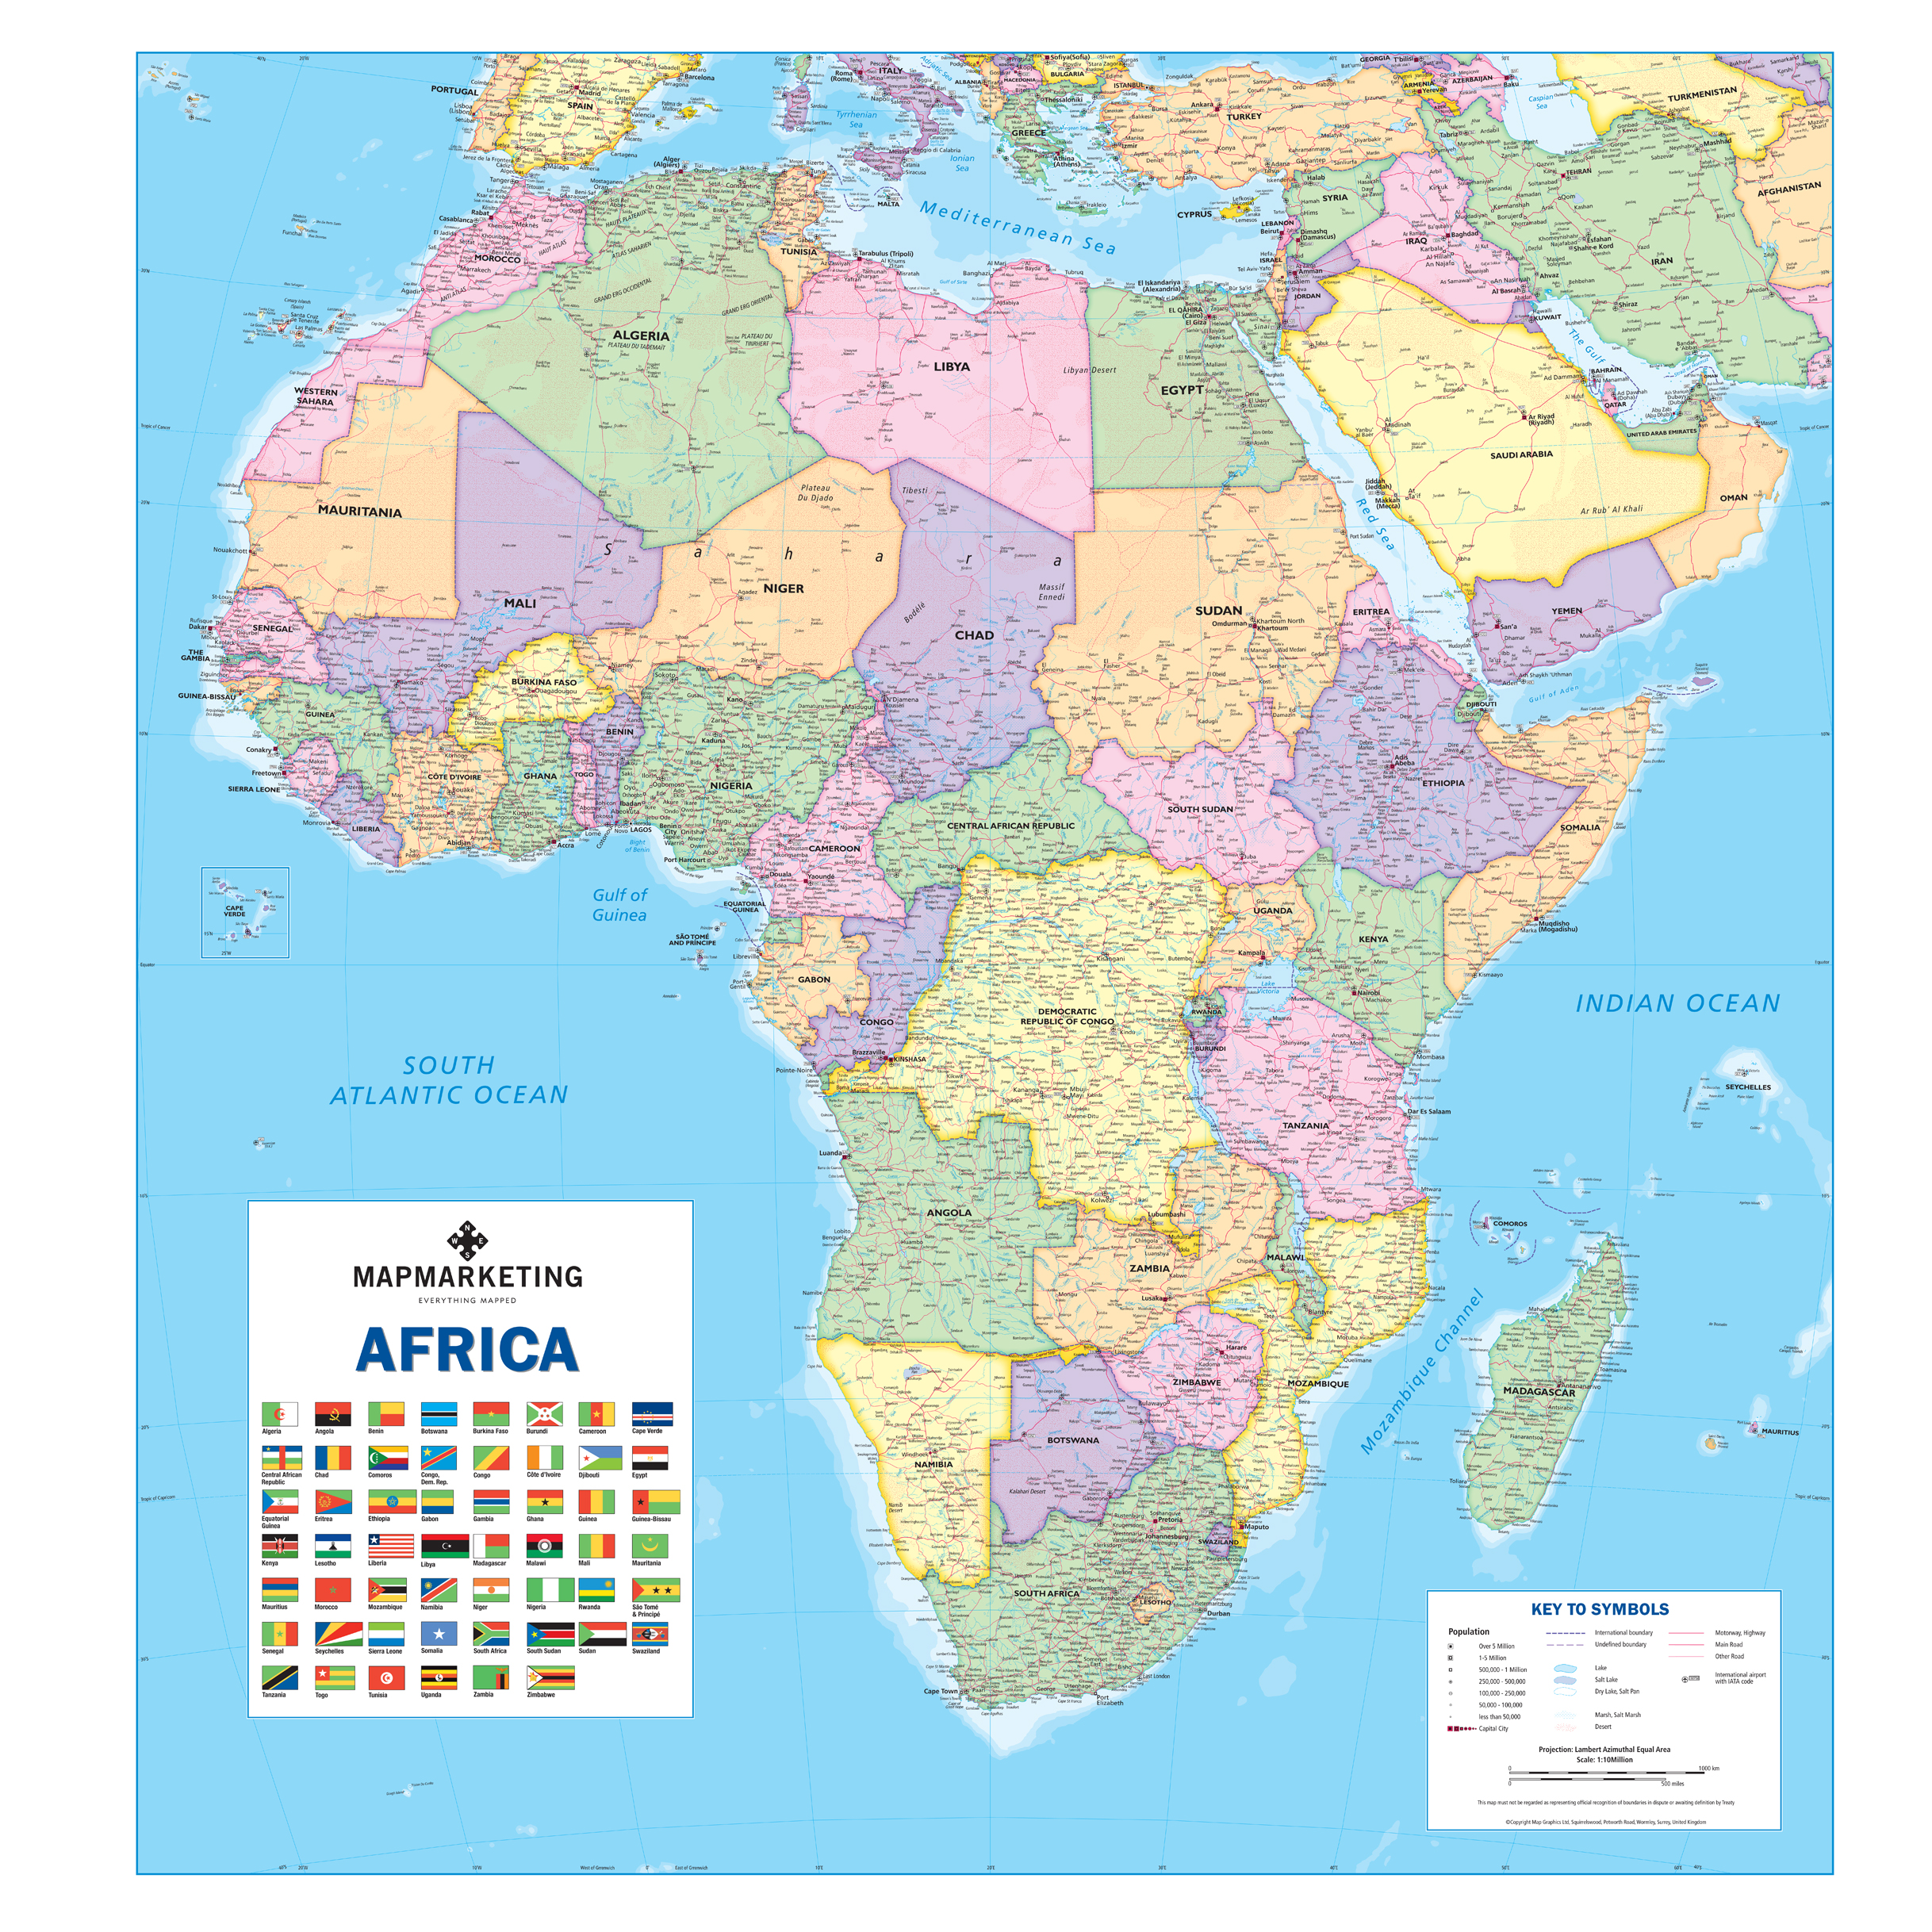 Map Of Africa Today.Mapping Africa Expat East Africa